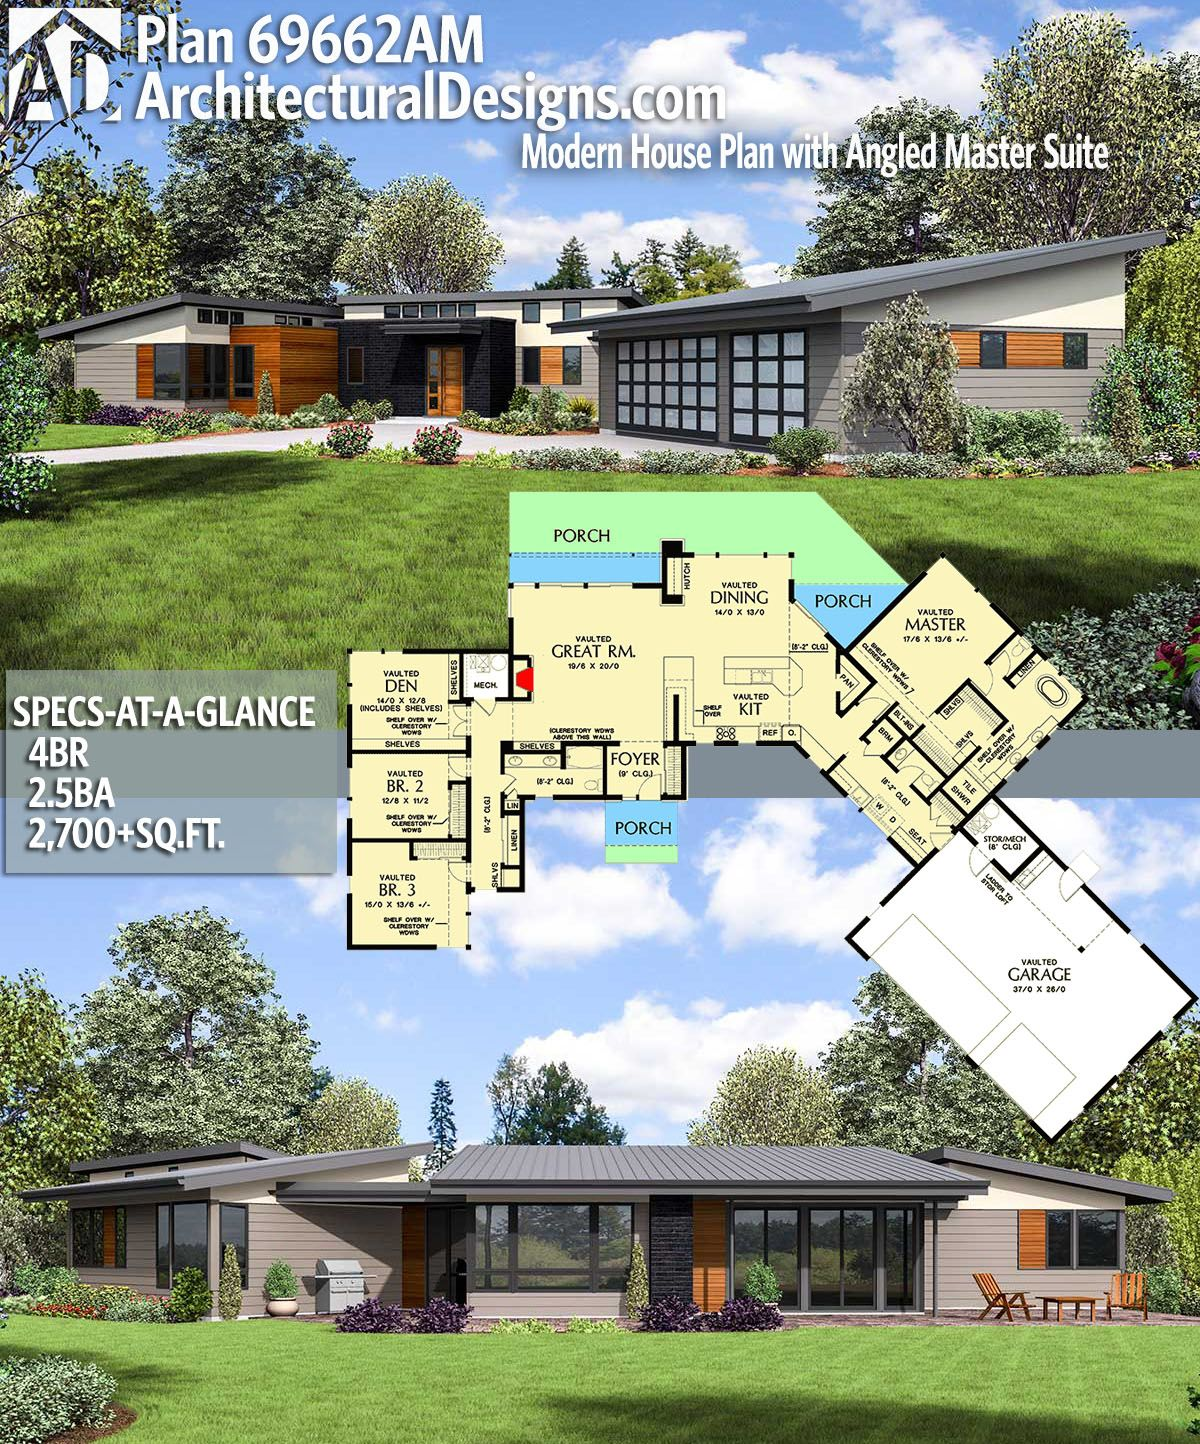 Architectural Designs Modern House Plan 69662AM gives